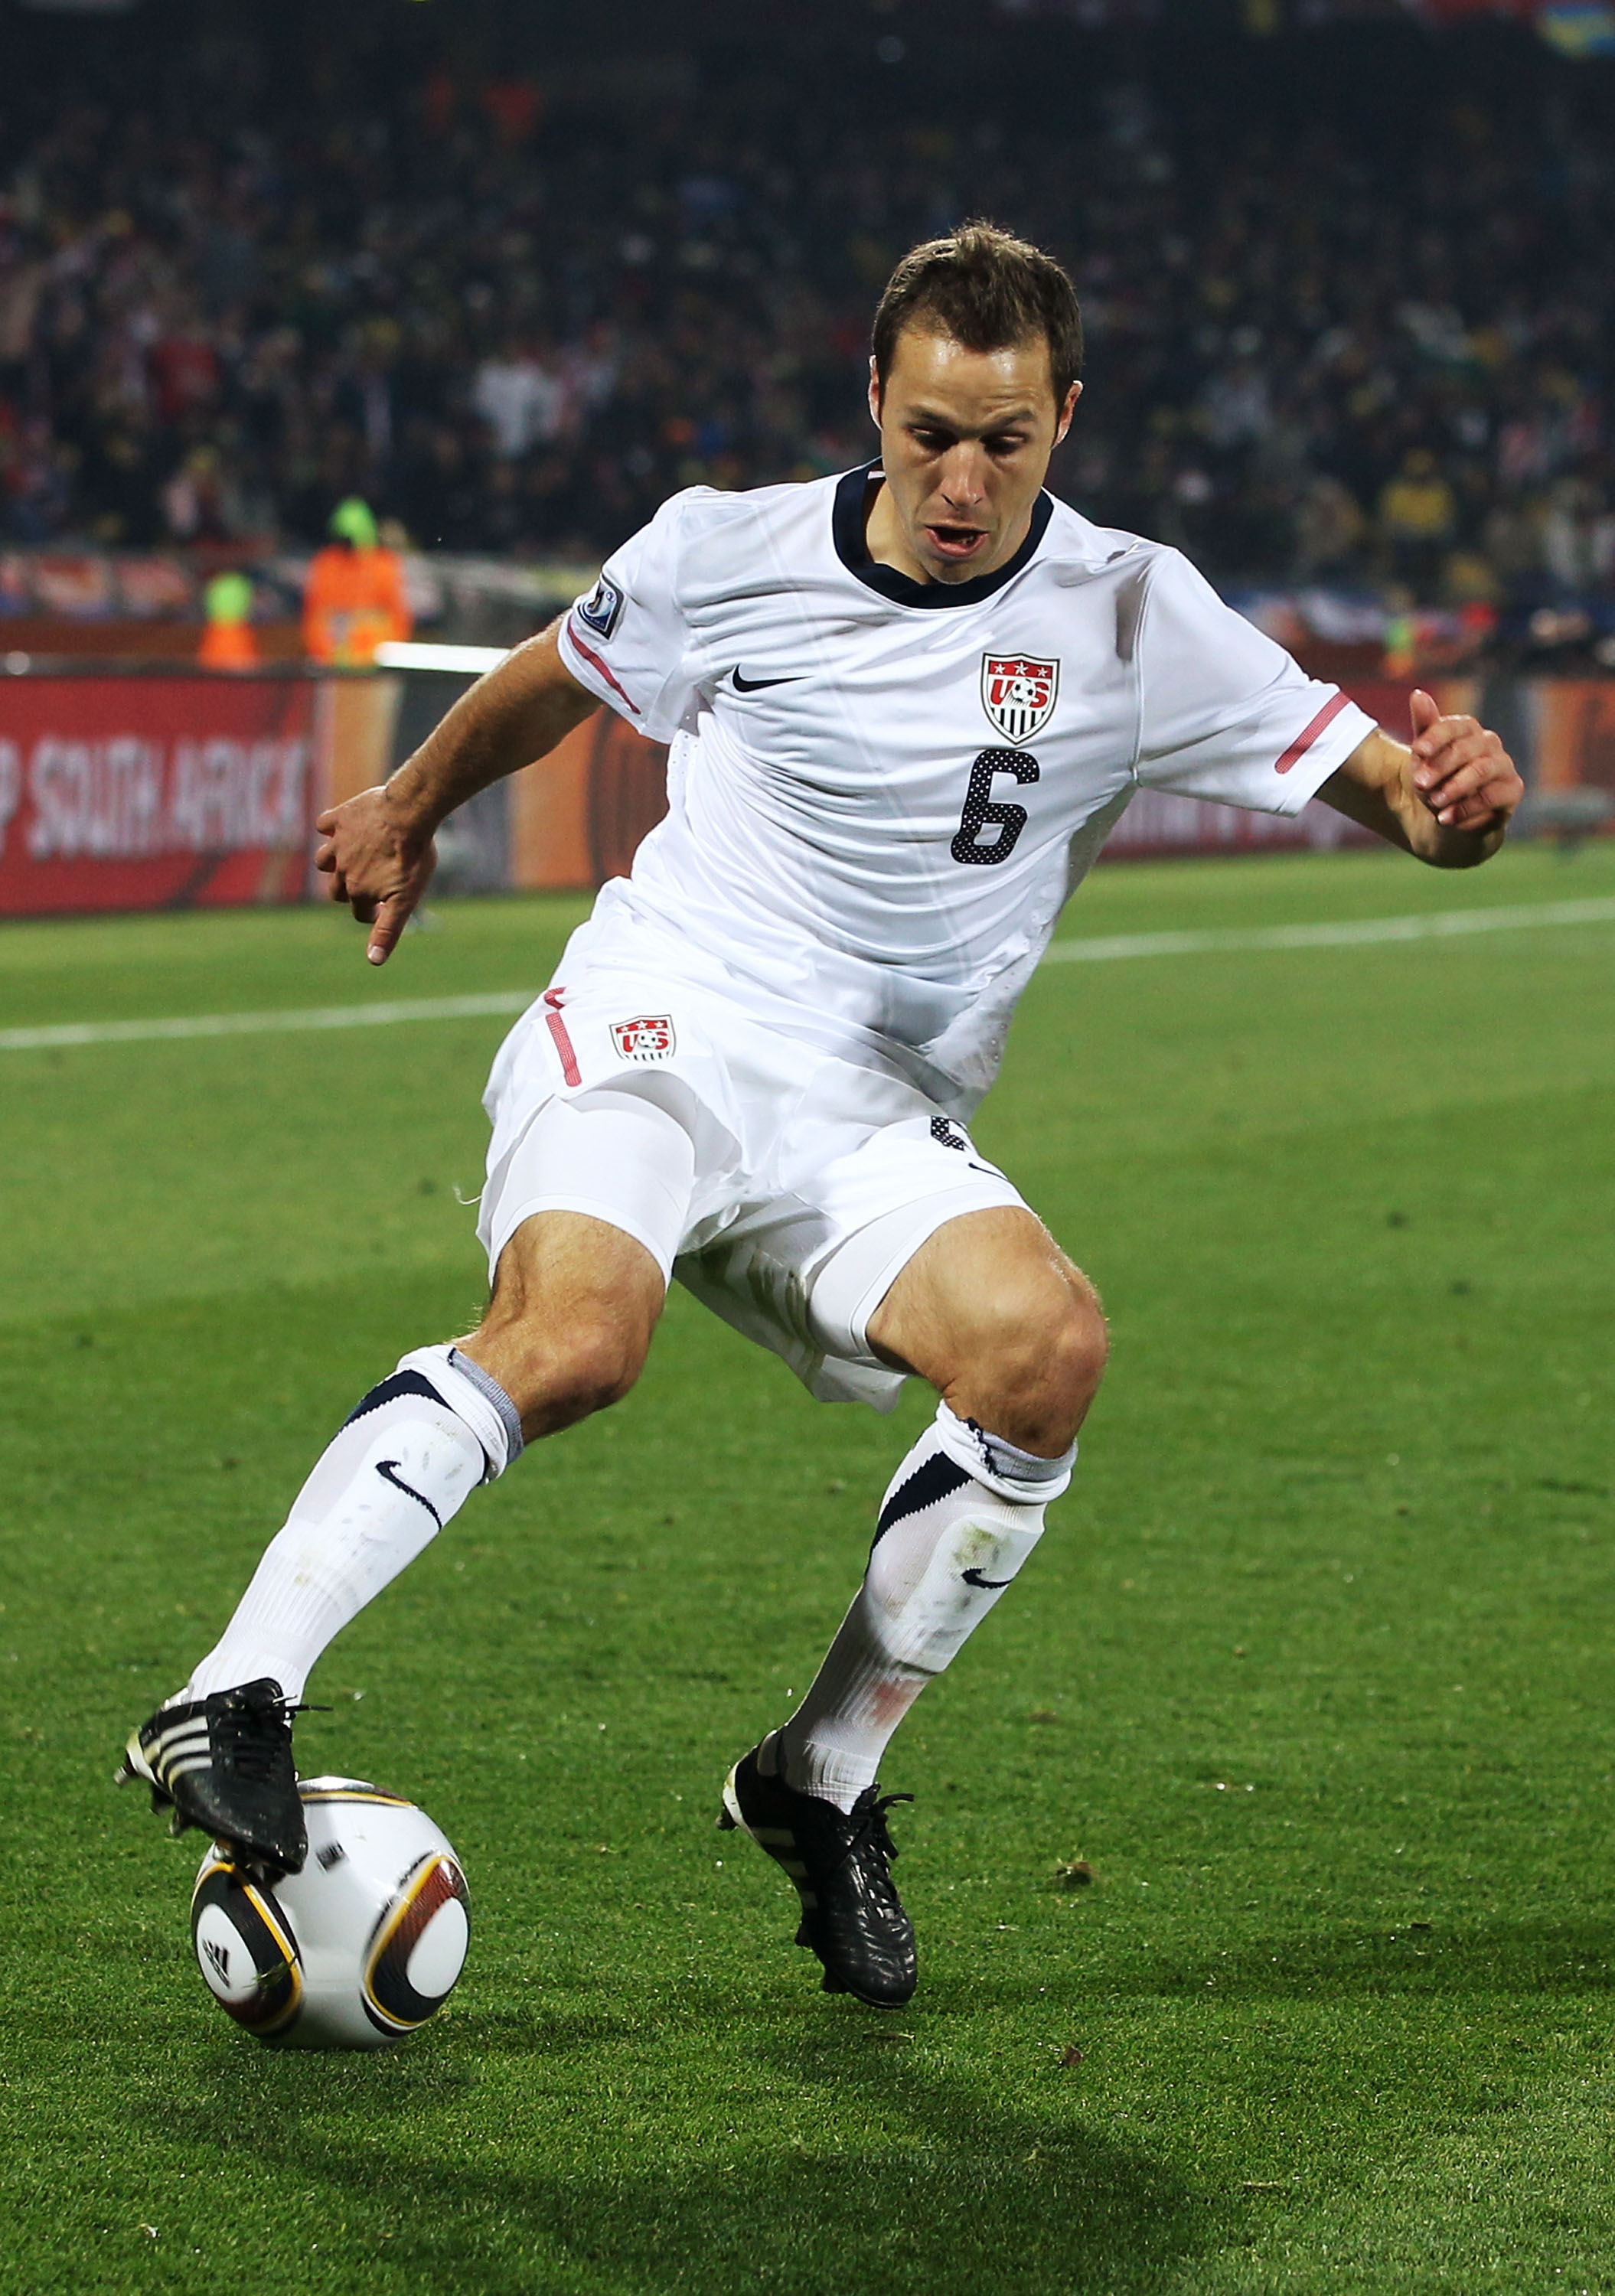 RUSTENBURG, SOUTH AFRICA - JUNE 26: Steve Cherundolo of the United States in action during the 2010 FIFA World Cup South Africa Round of Sixteen match between USA and Ghana at Royal Bafokeng Stadium on June 26, 2010 in Rustenburg, South Africa.  (Photo by